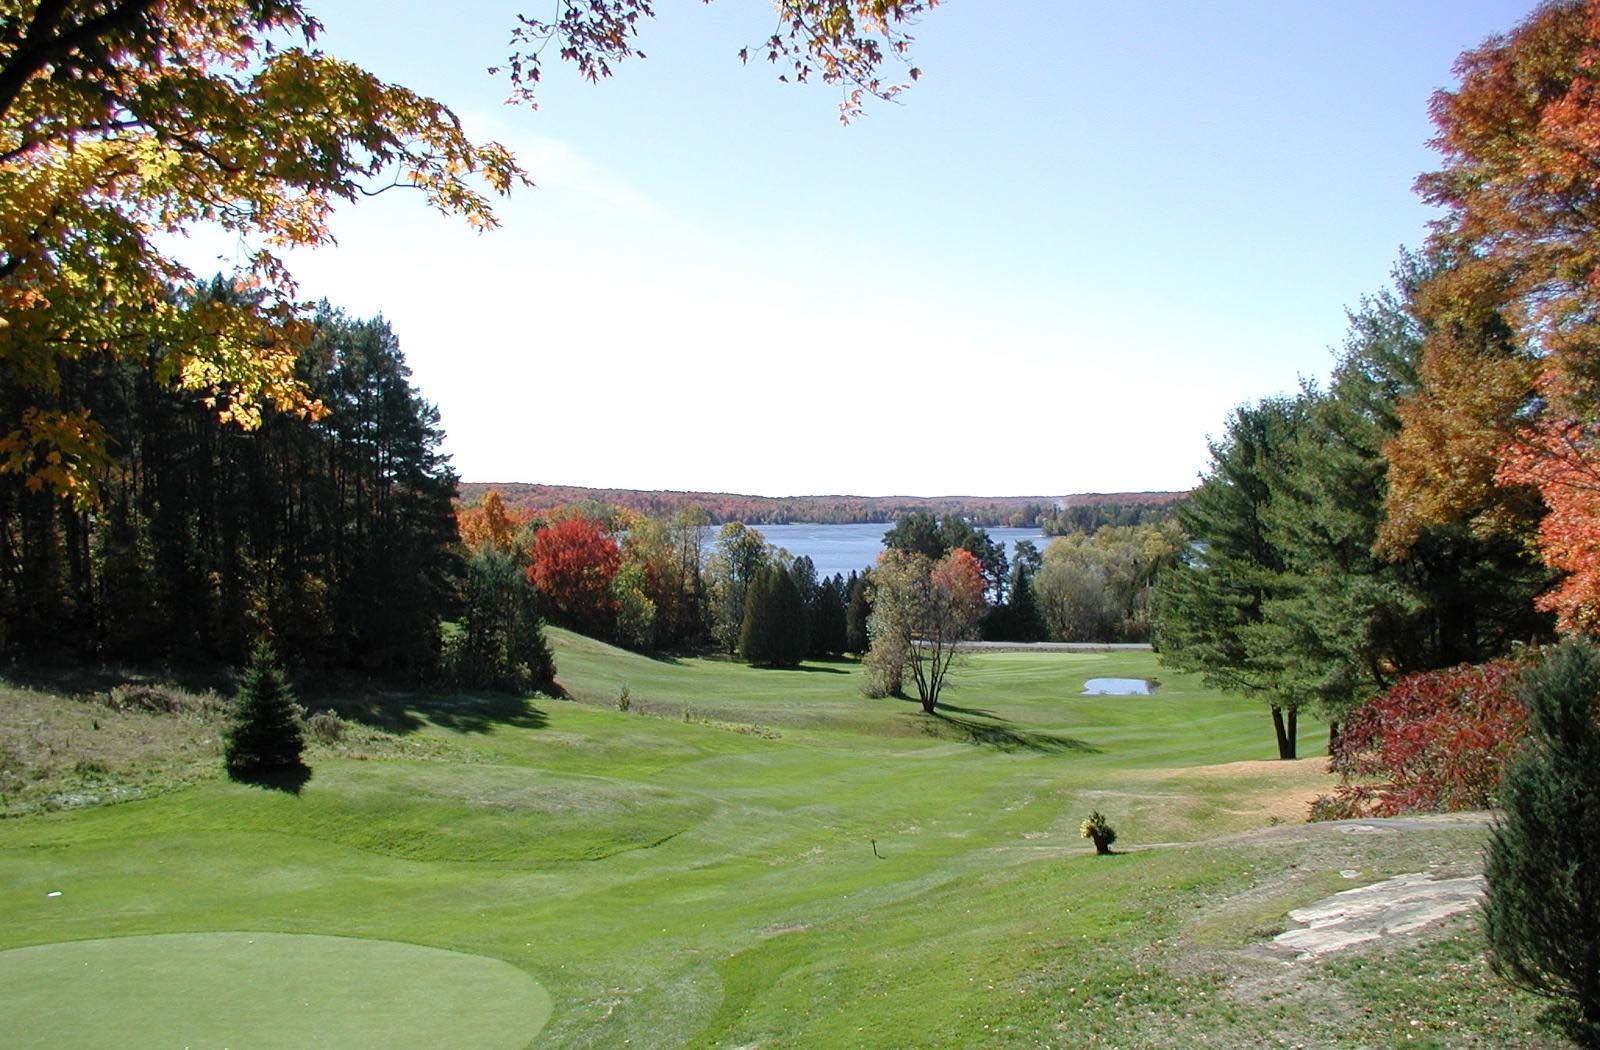 Haliburton Highlands Golf Course with greens and lake in background